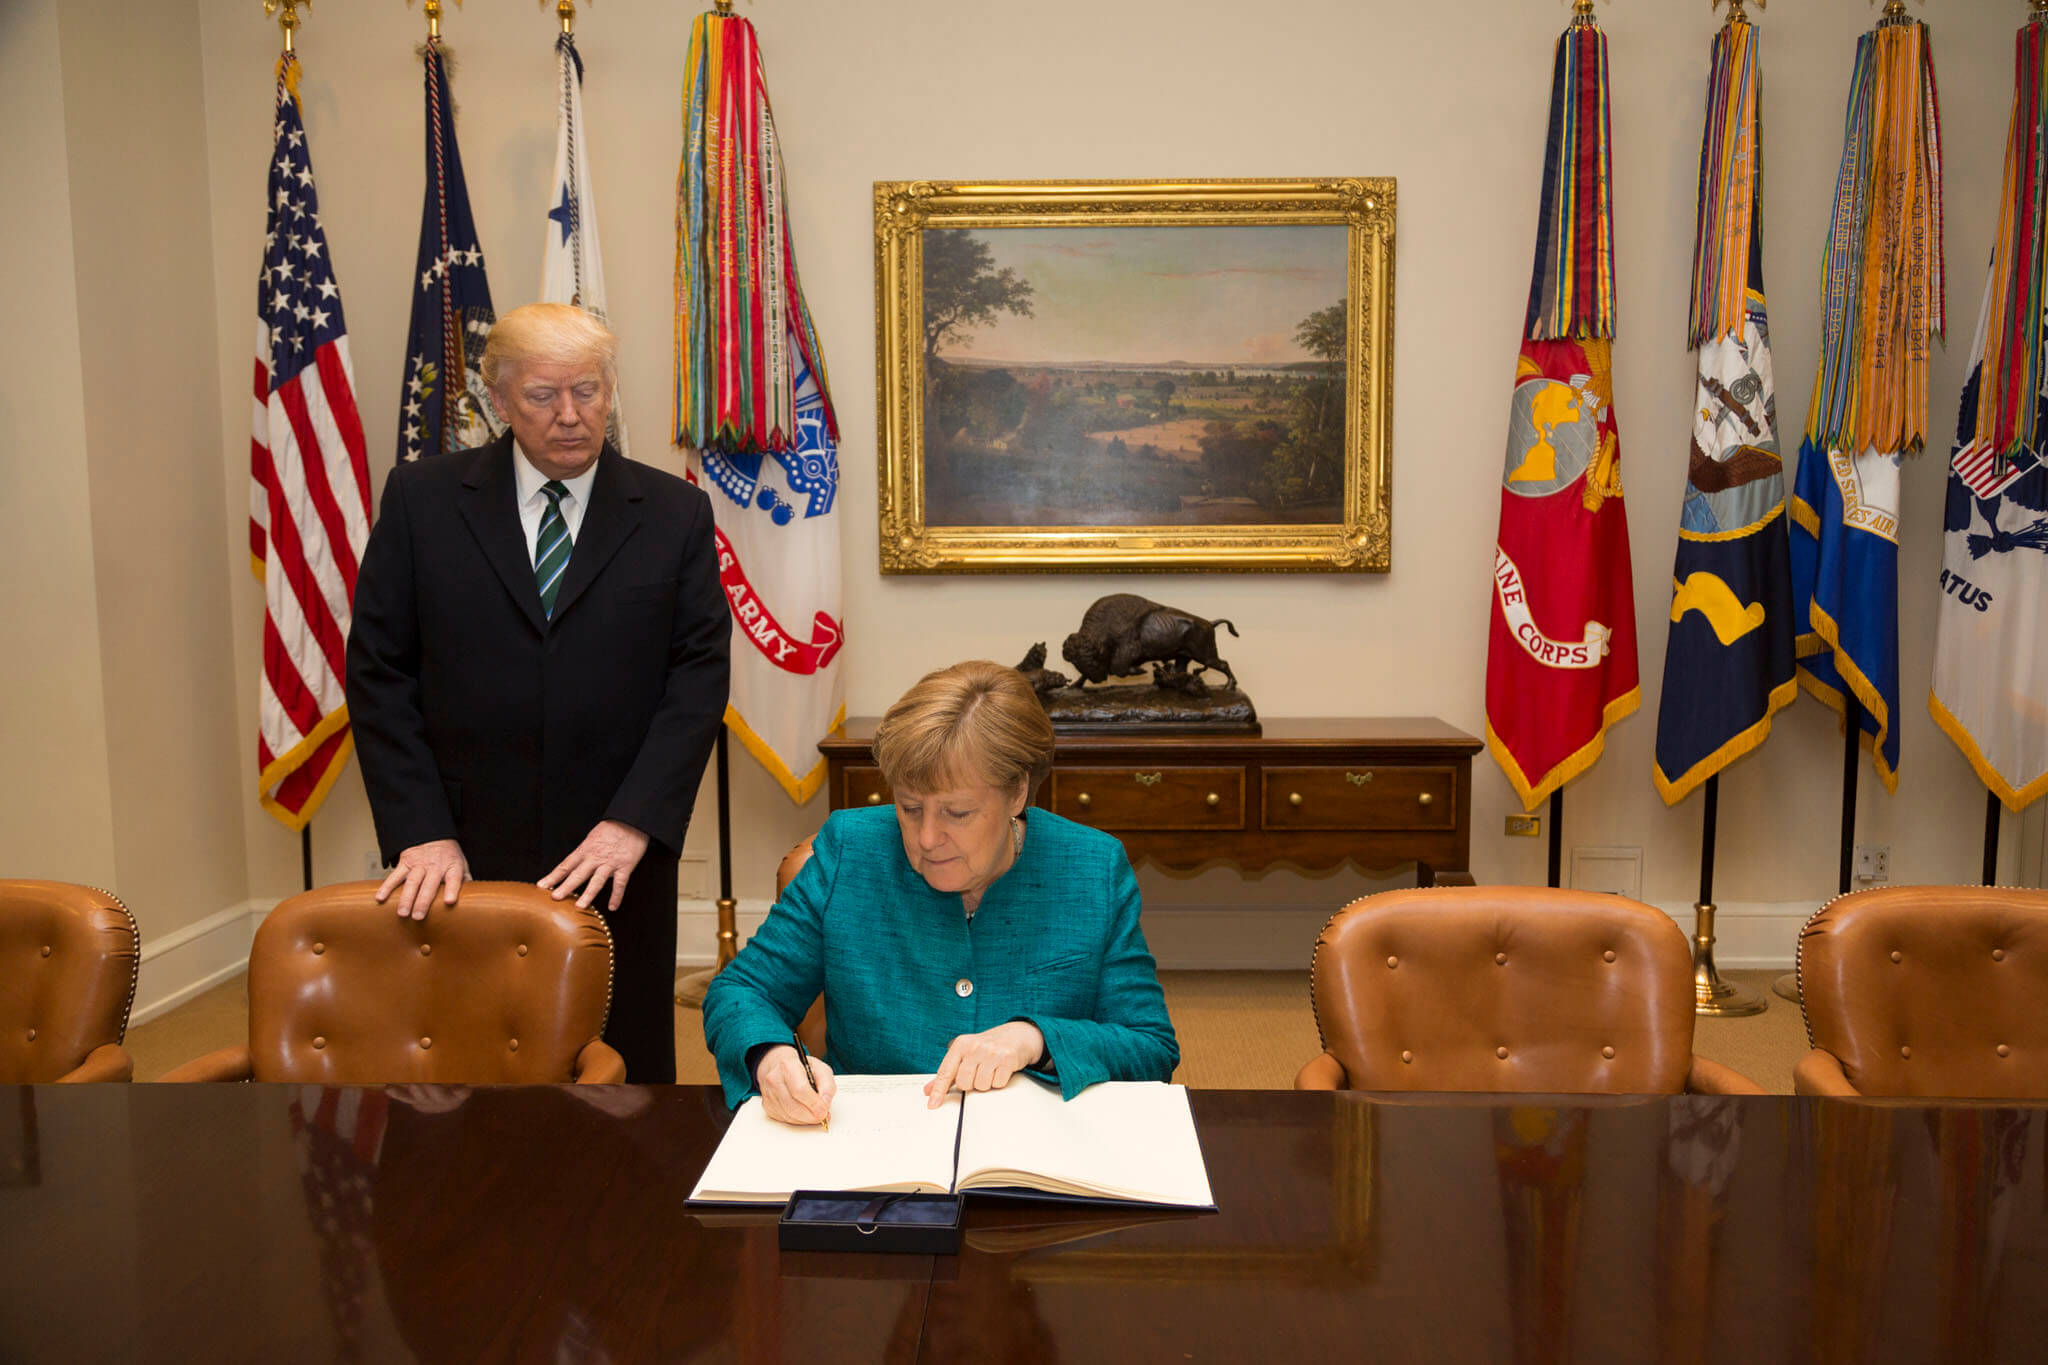 Frohlich-President Donald Trump accompanies German Chancellor Angela Merkel as she signs the guest book, Friday, March 17, 2017, in the Roosevelt Room, during her official visit to the White House in Washington in May 2018. Official White House Photo